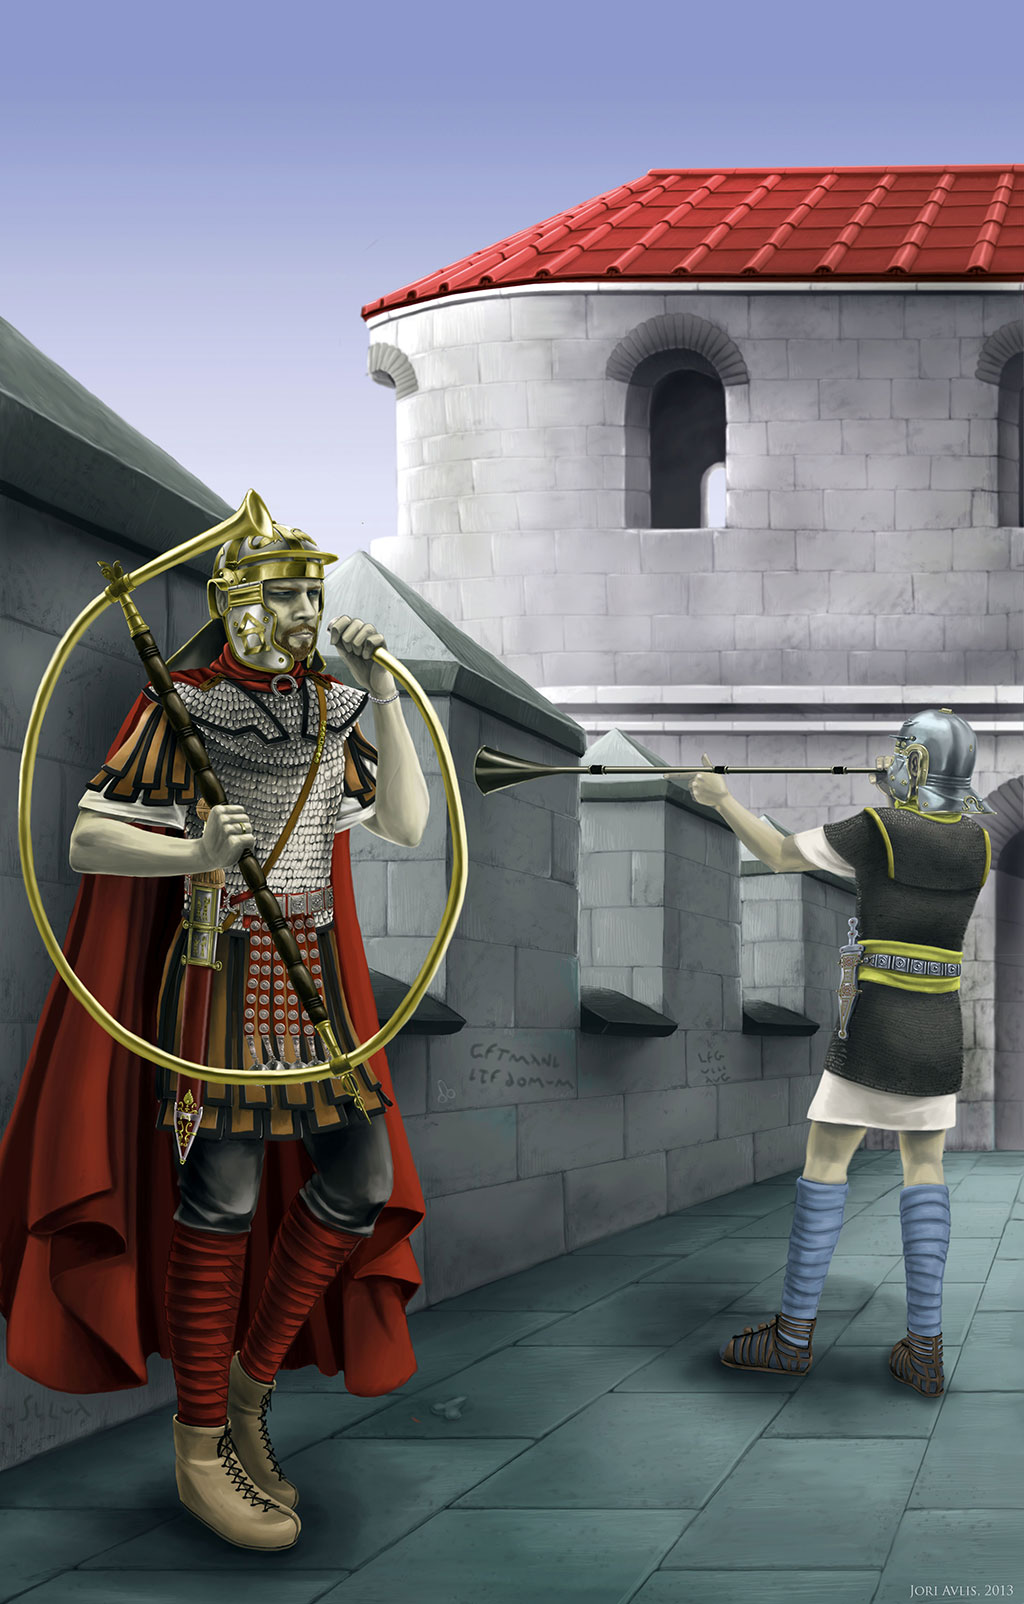 On the left, a cornicen. On the right, the tubicen.